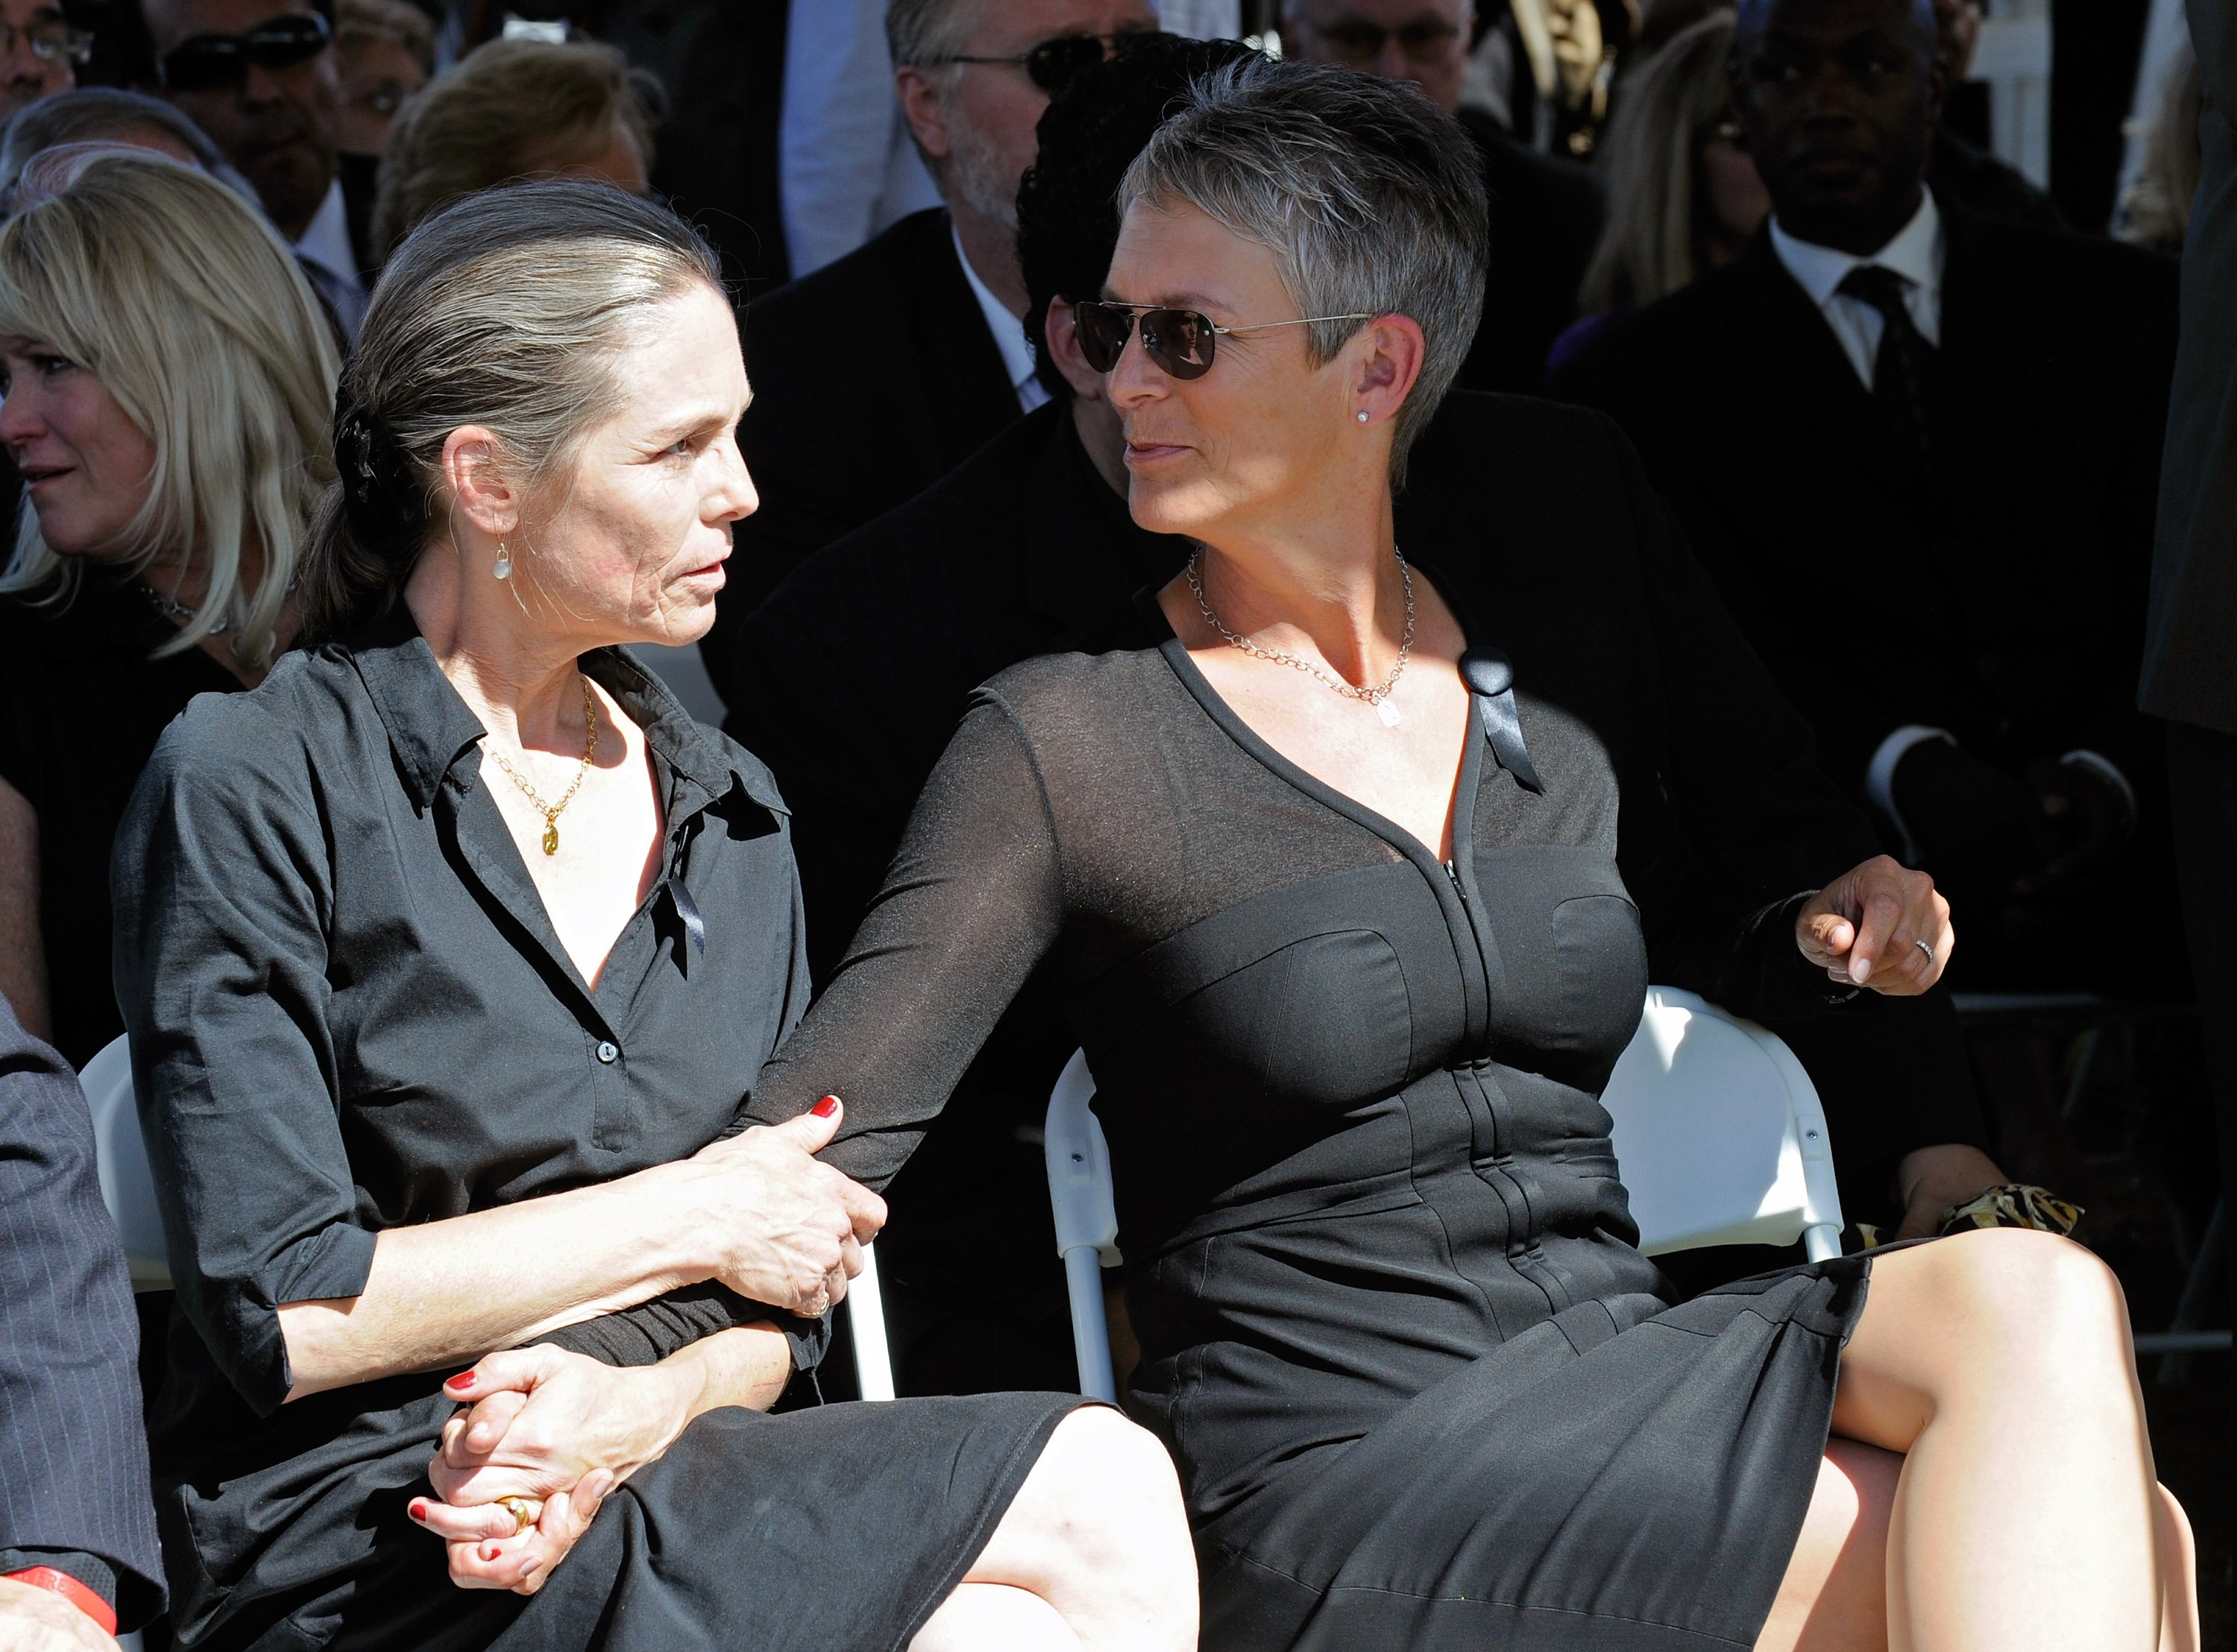 Kelly and Jamie Lee Curtis | Image Source: Getty Images